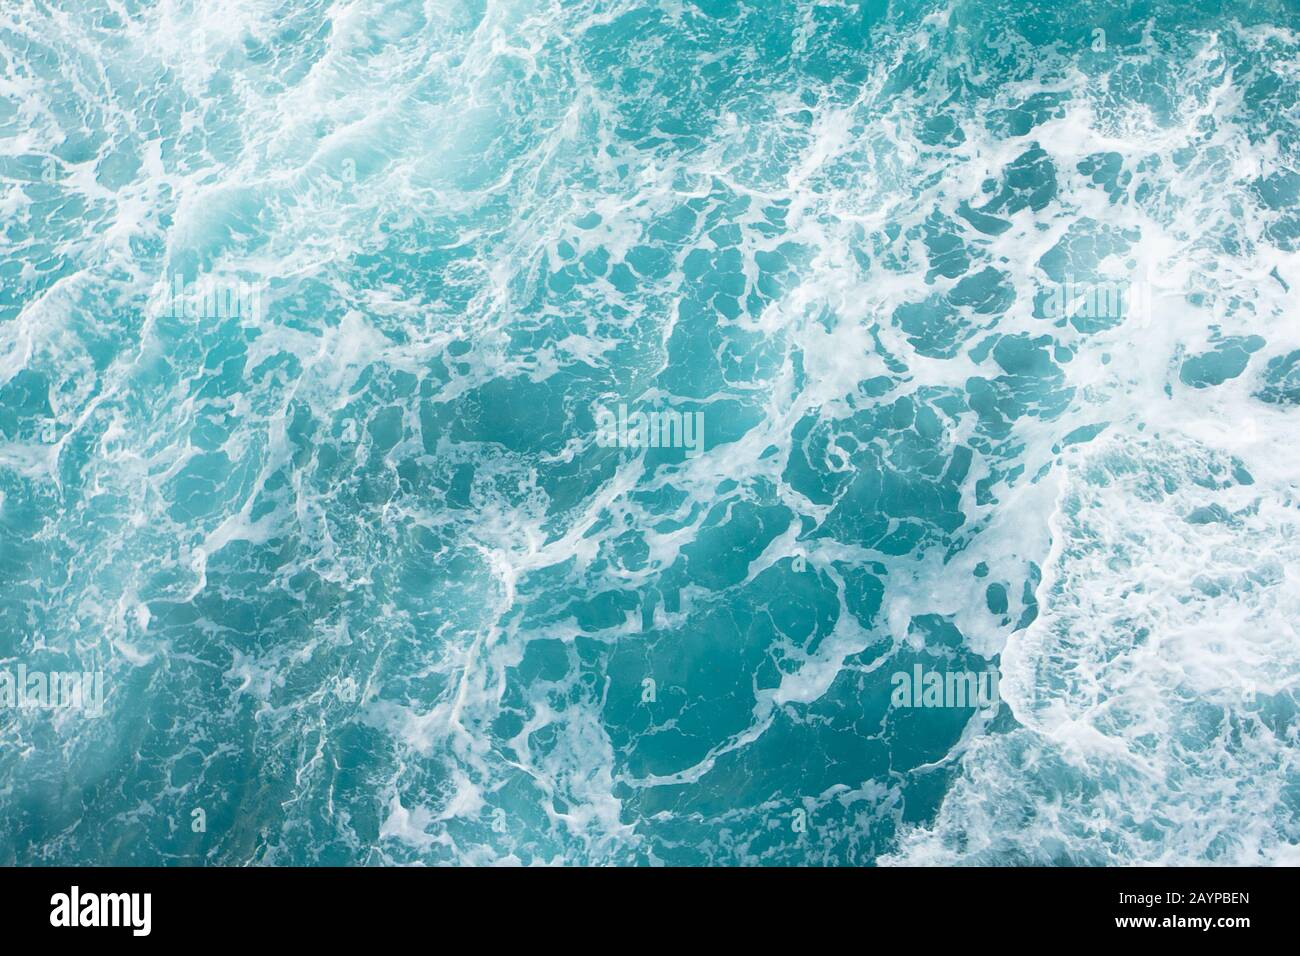 Marble Water Texture Ocean Waves Motive Stock Photo Alamy